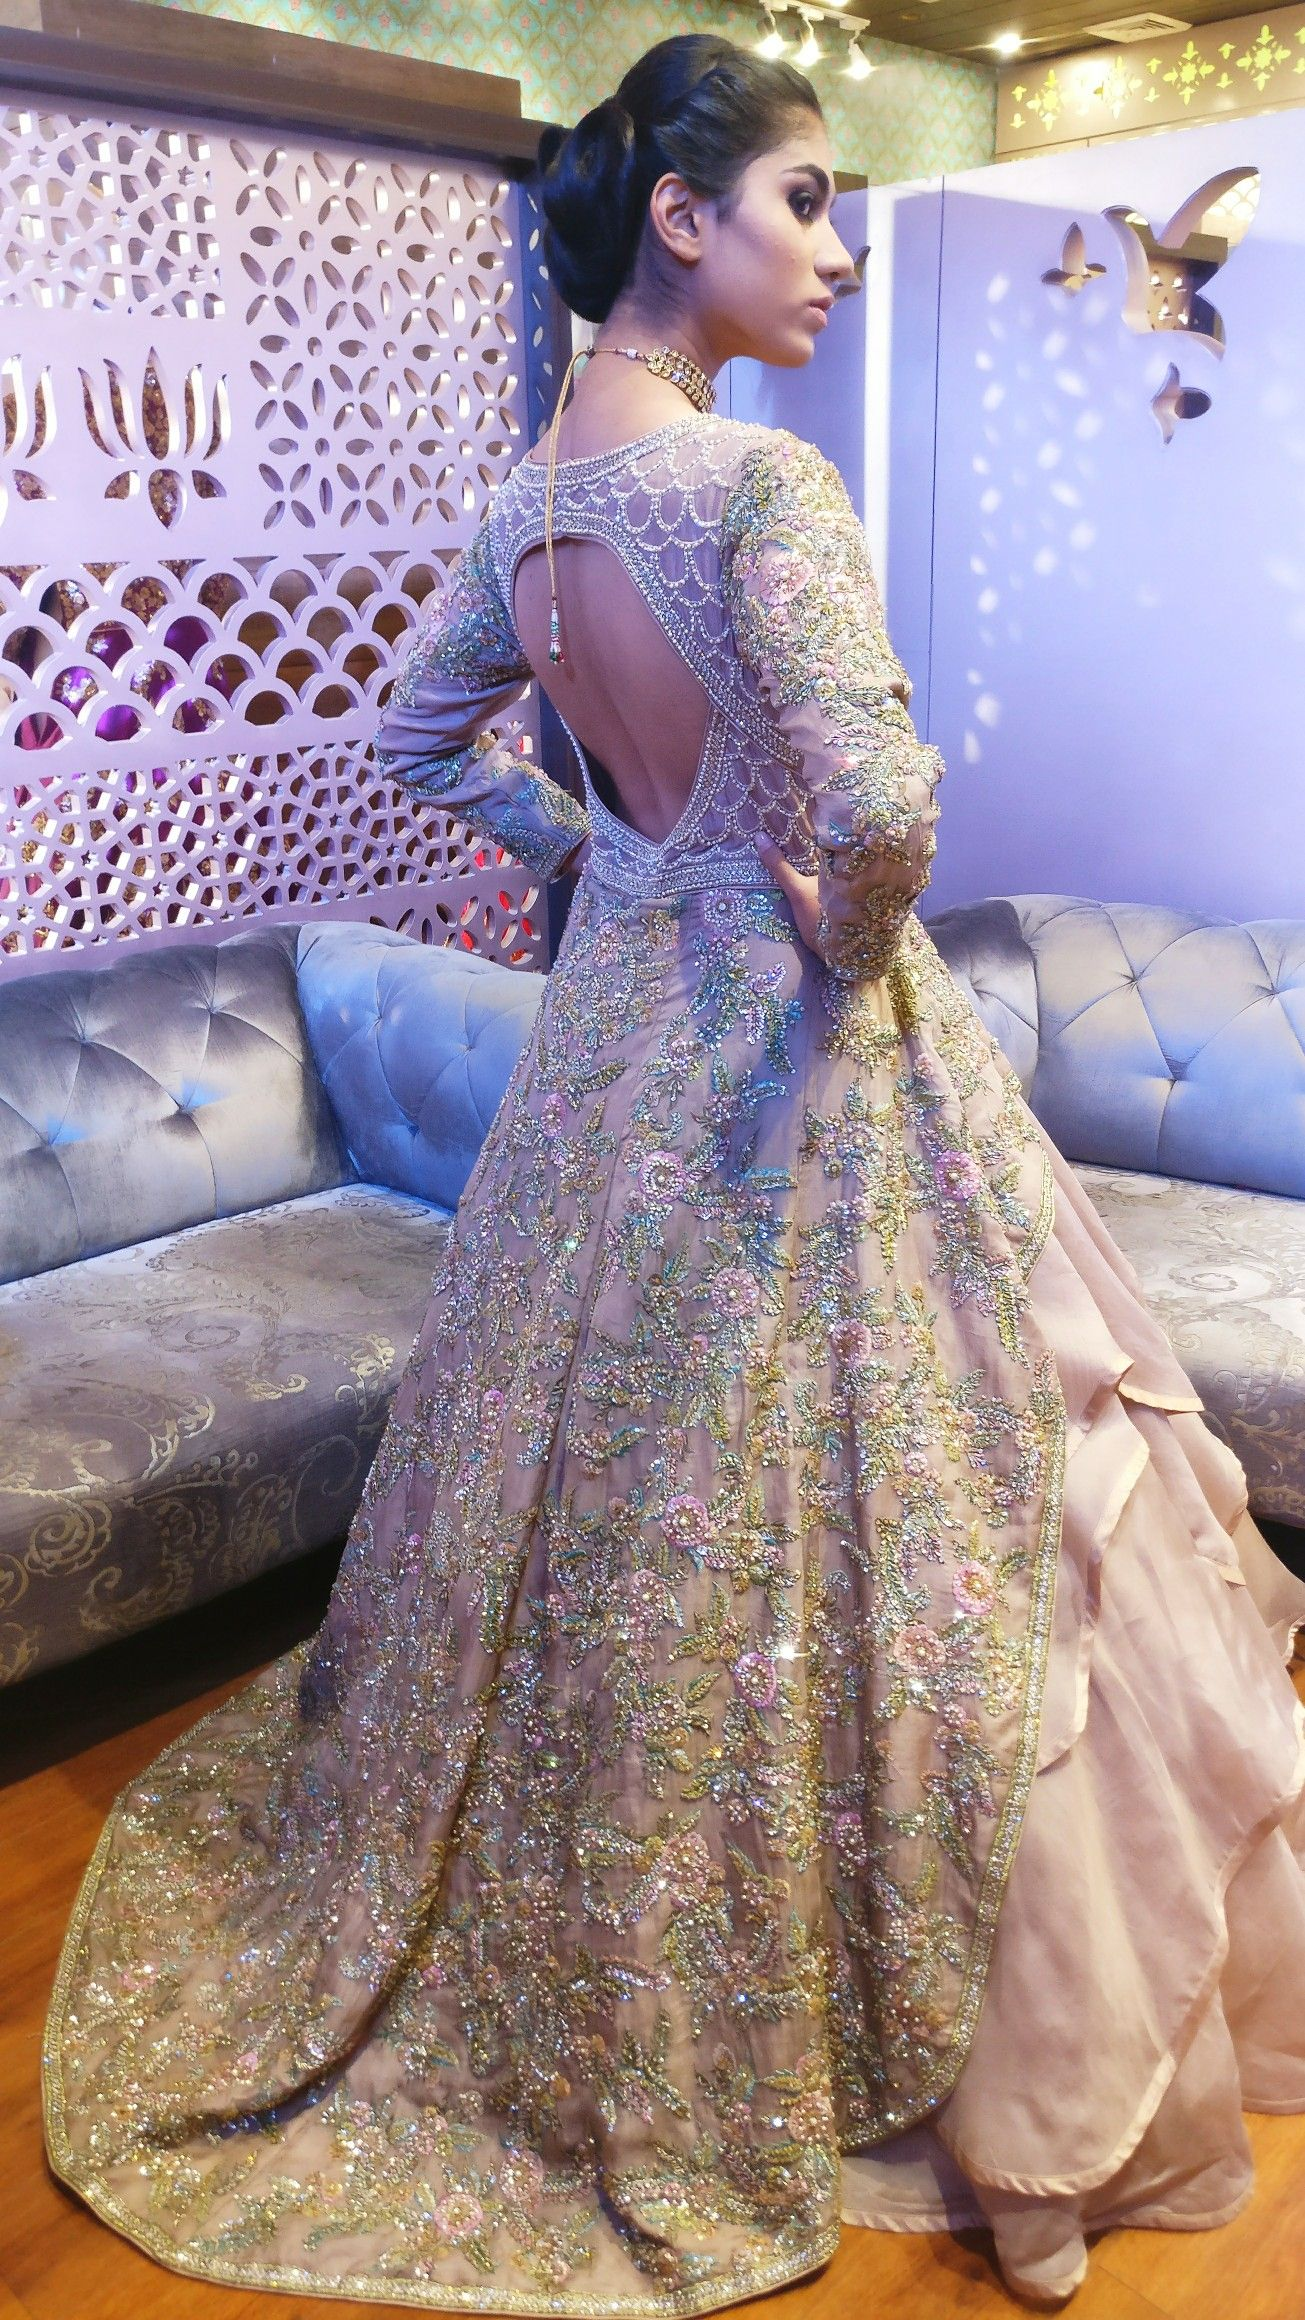 de90f50d87 Find the latest of Indian wedding couture in Delhi at CTC Mall, Moti Nagar.